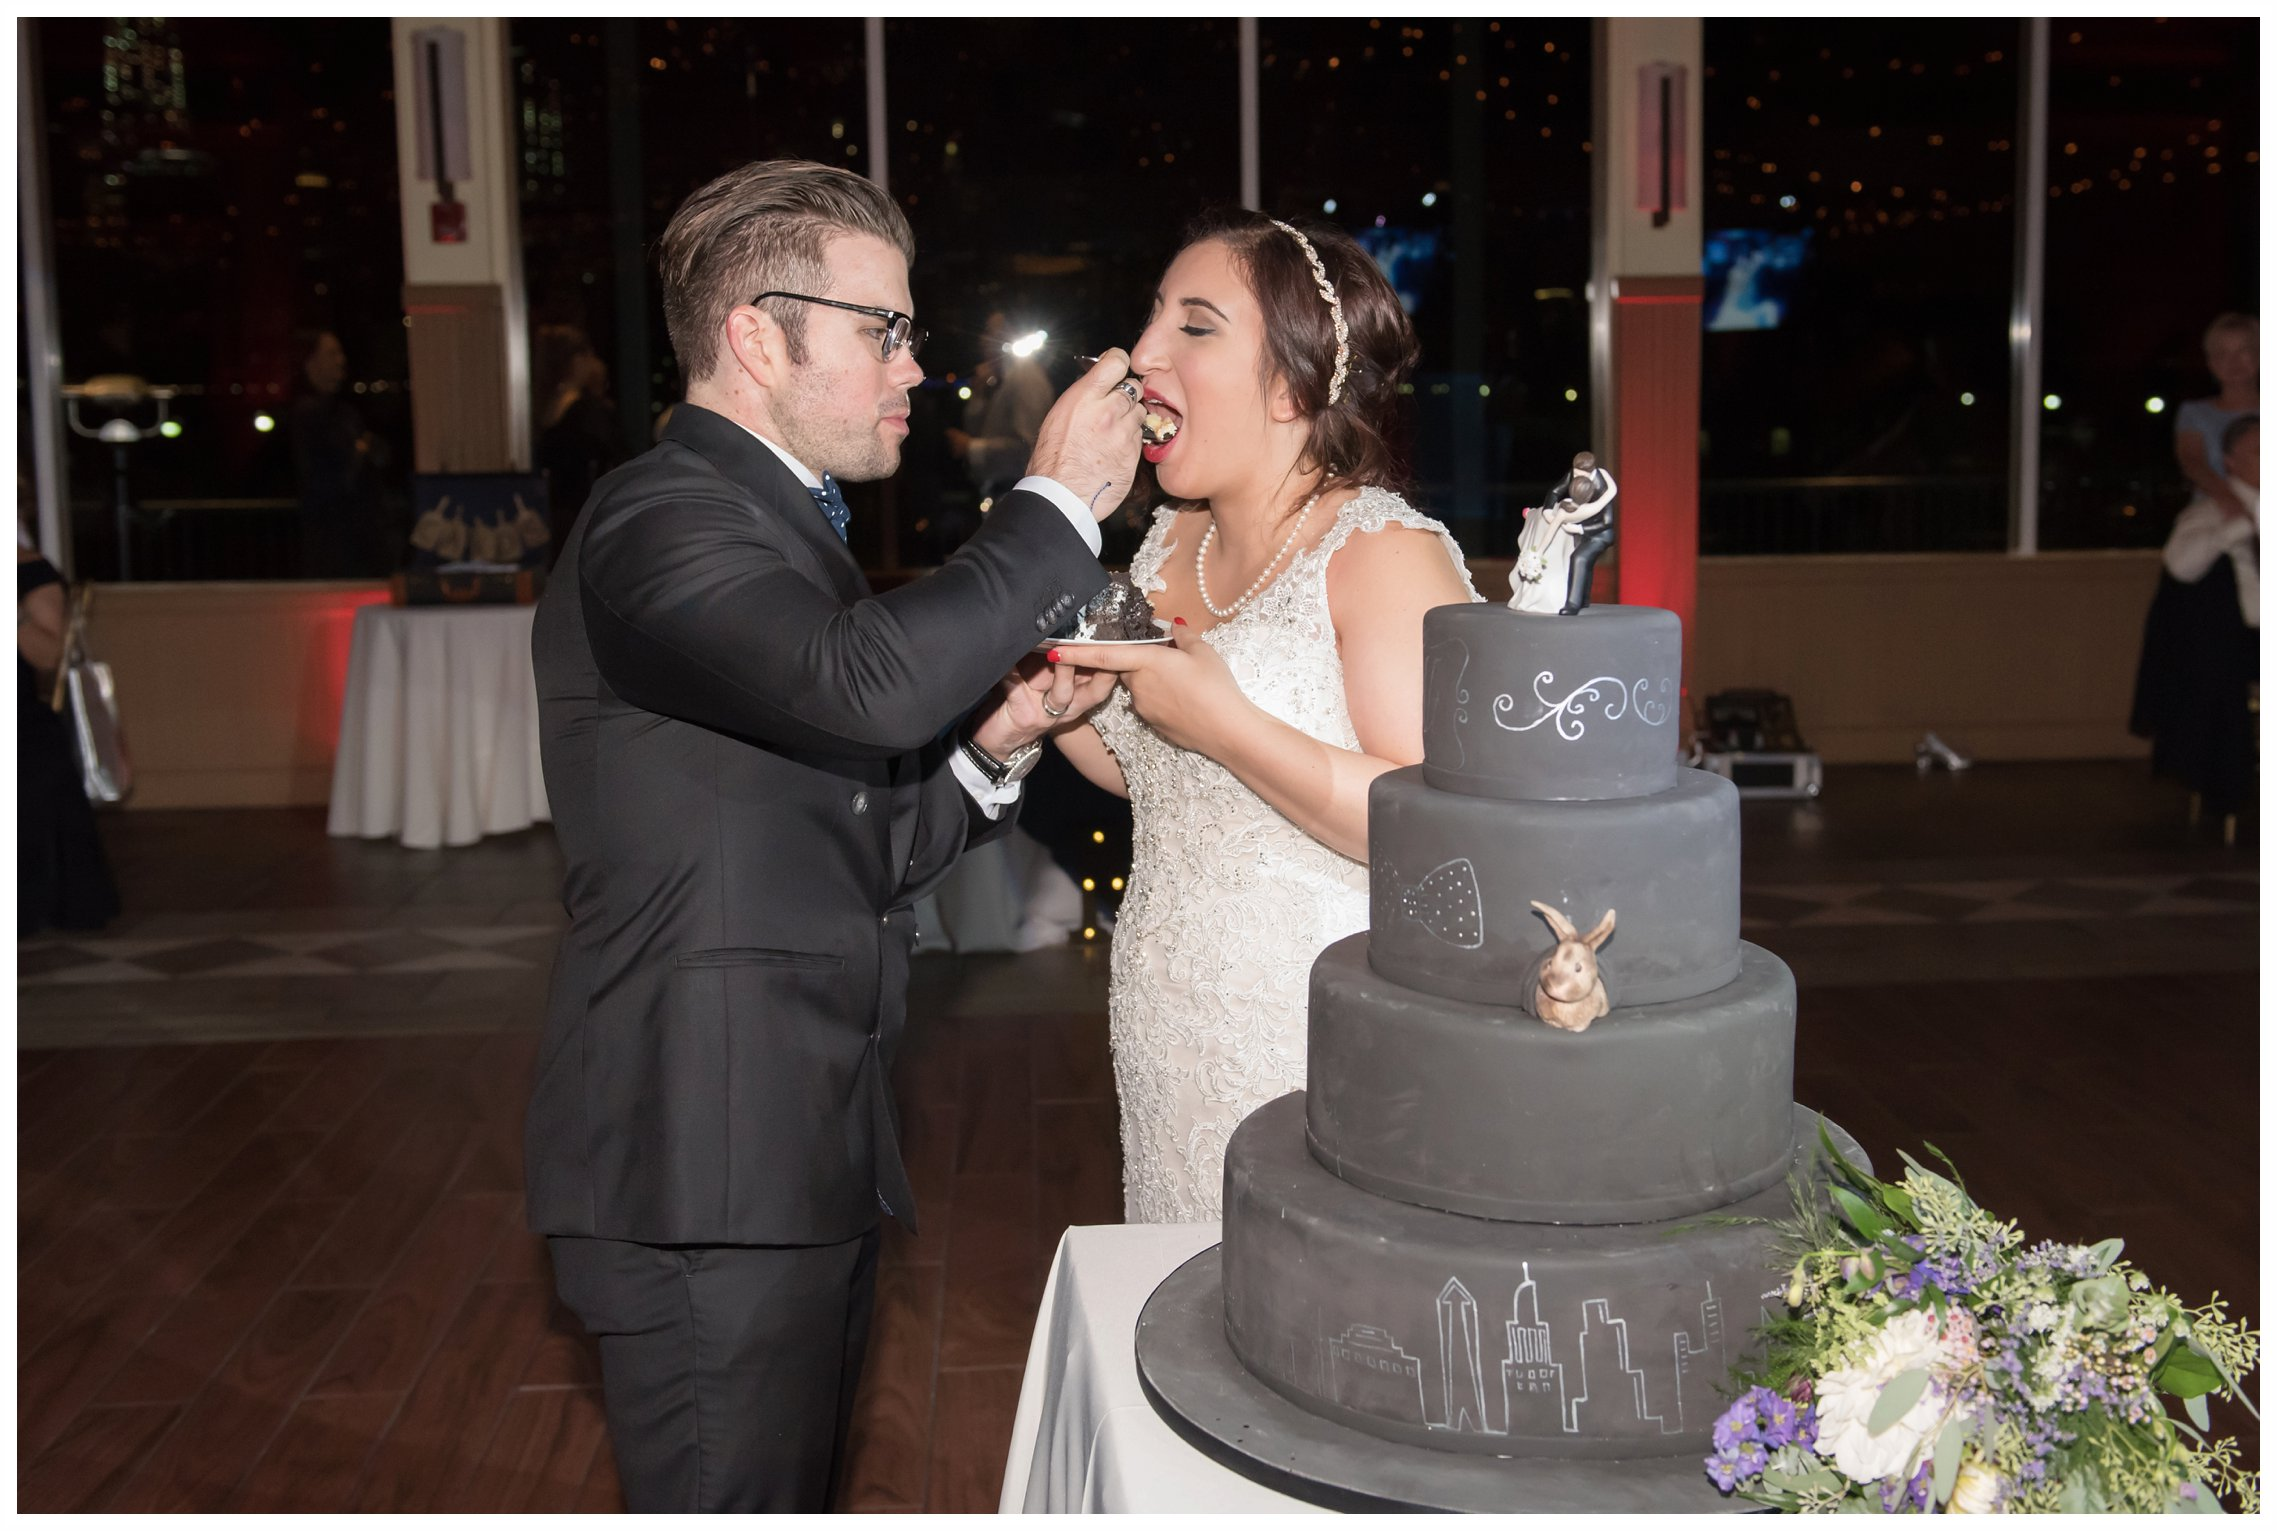 bride and groom cake cutting at the wedding at the liberty house restaurant in jersey city new jersey